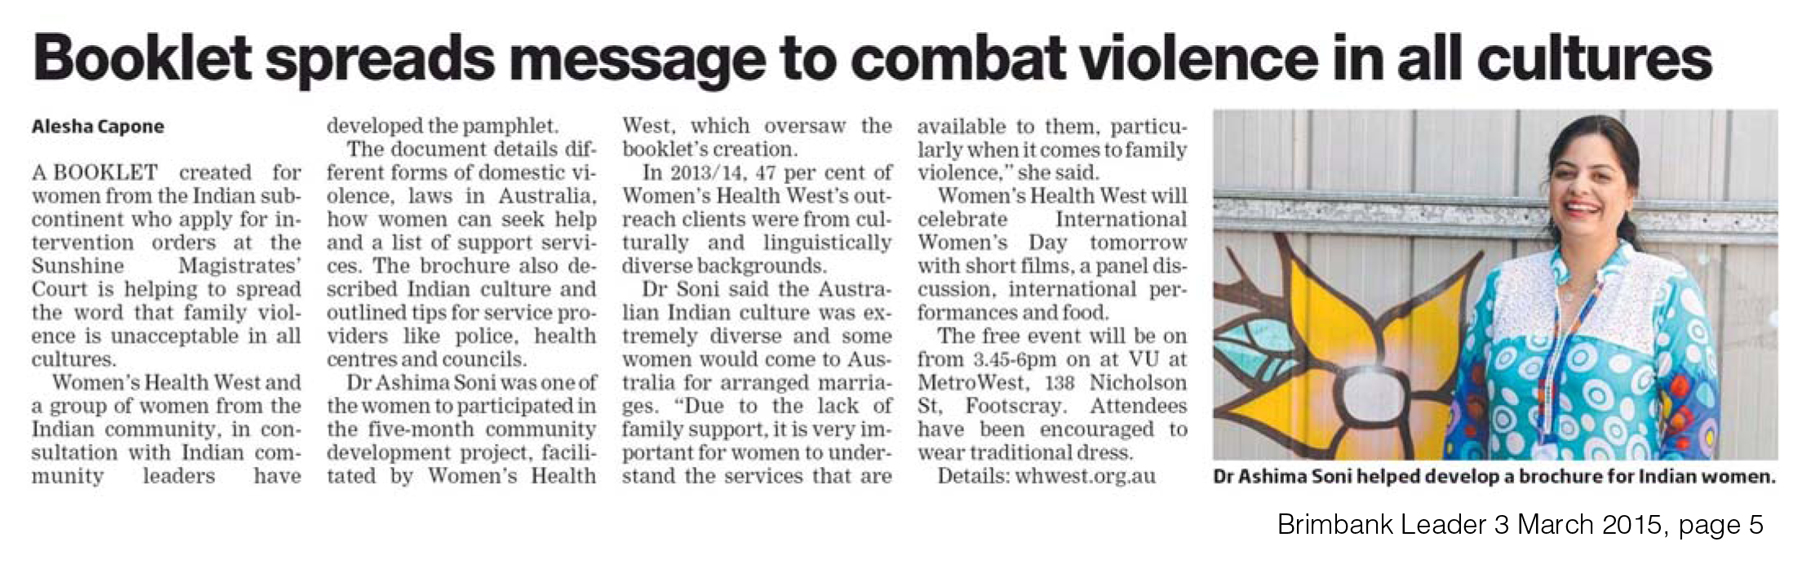 Booklet spreads message to combat violence in all cultures